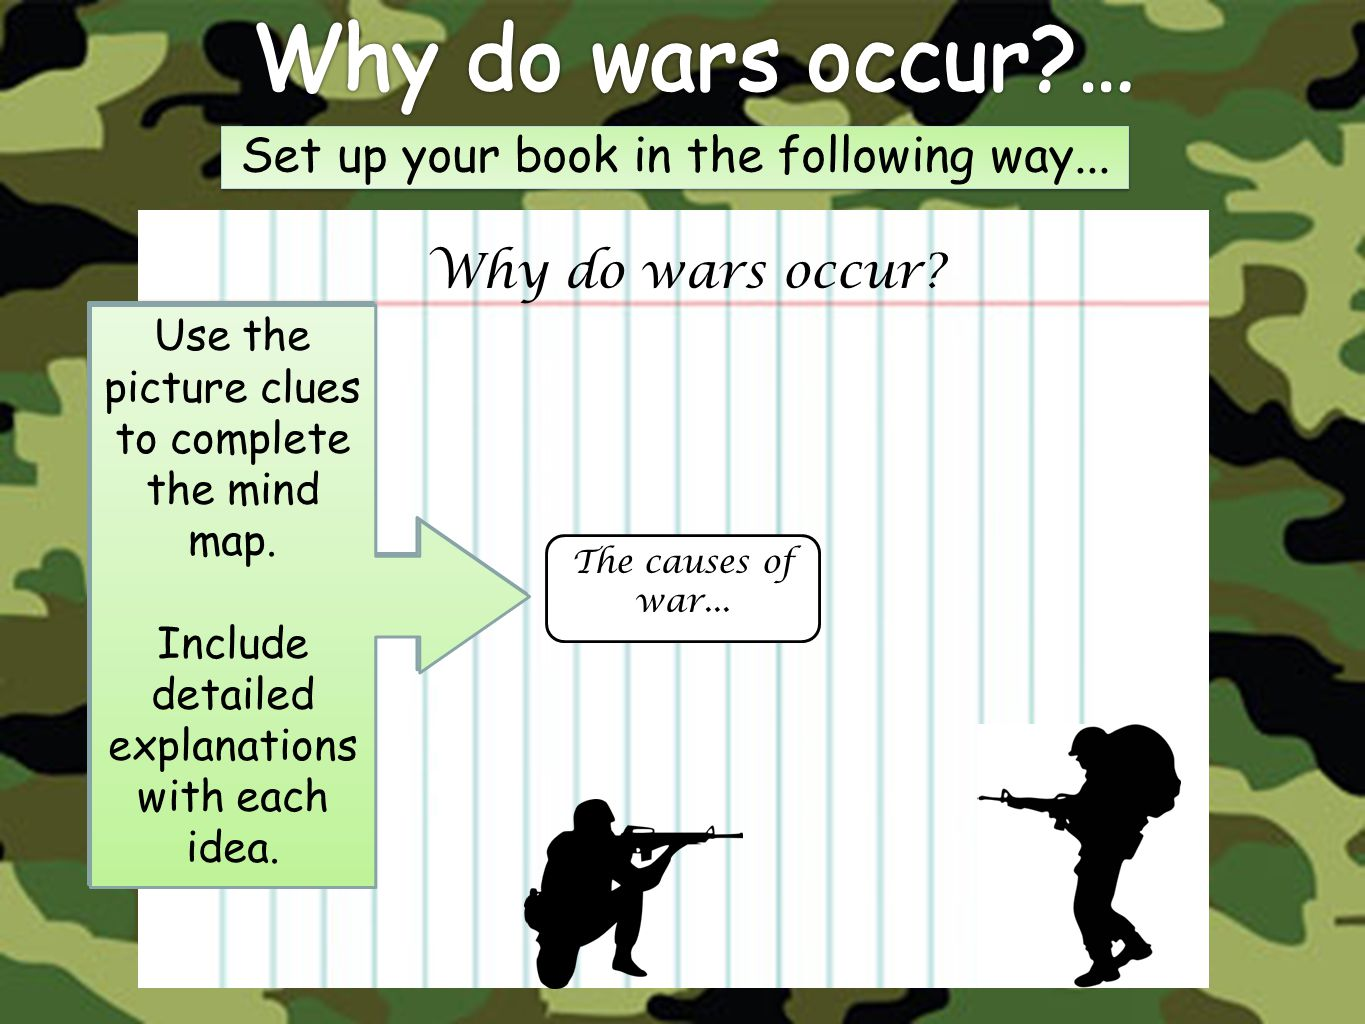 Why do wars occur … Set up your book in the following way...